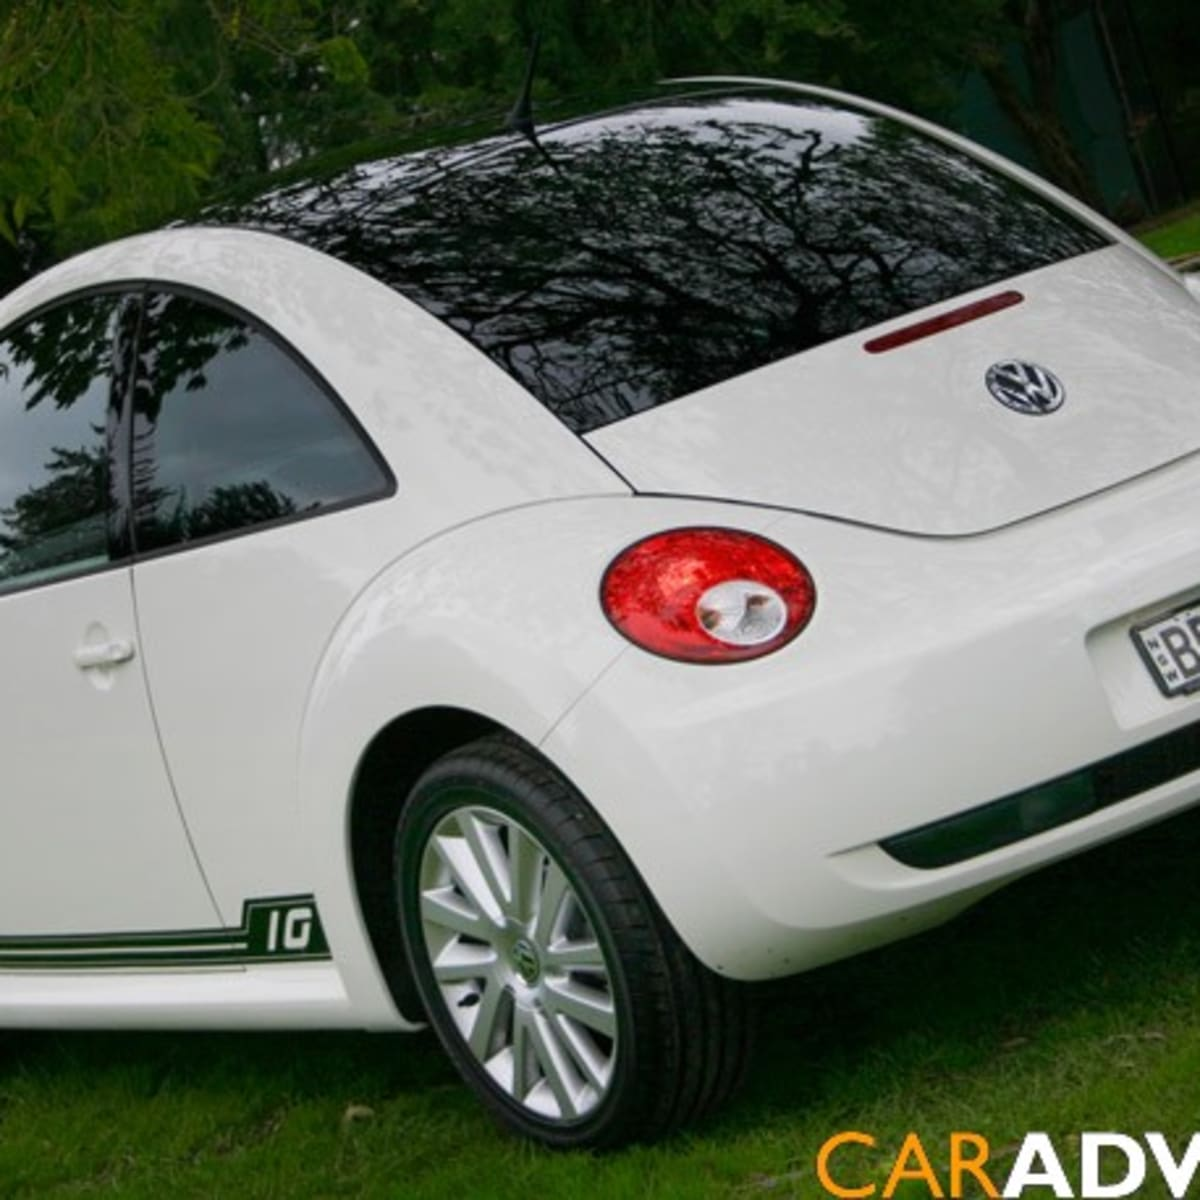 2008 Volkswagen New Beetle Anniversary Edition Review Caradvice